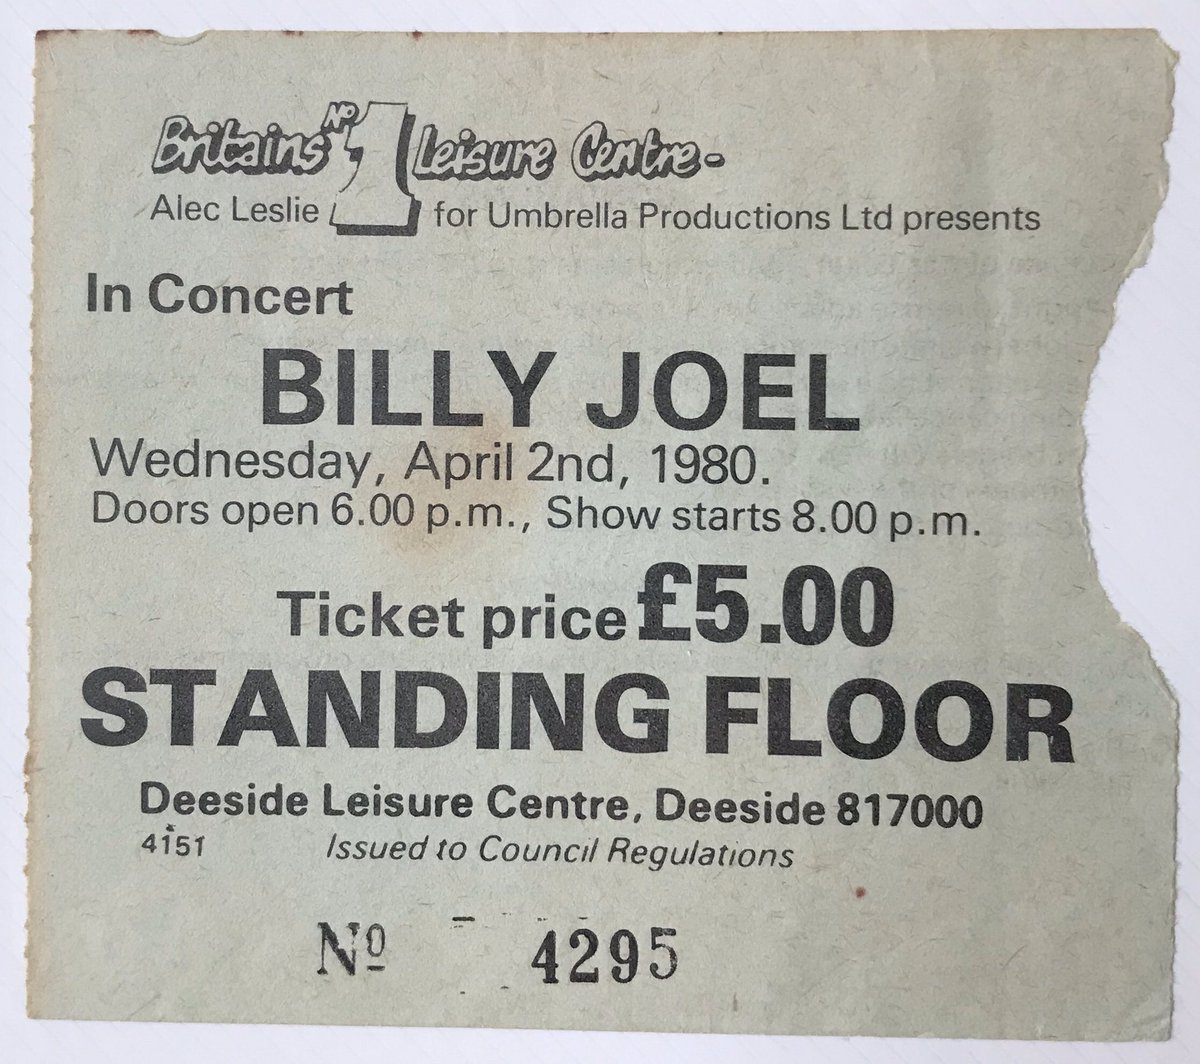 On this gig day 40 years ago!. @billyjoel at @DLC_IceRink Great night in Deeside with Billy! Fantastic show in a venue that was to host some huge acts! Cold feet as I remember! Brilliant! #billyjoel #deesideicerink #deesideleisurecentre #giggoer #gig #onthisday #concertpic.twitter.com/AUuhFjfyiS